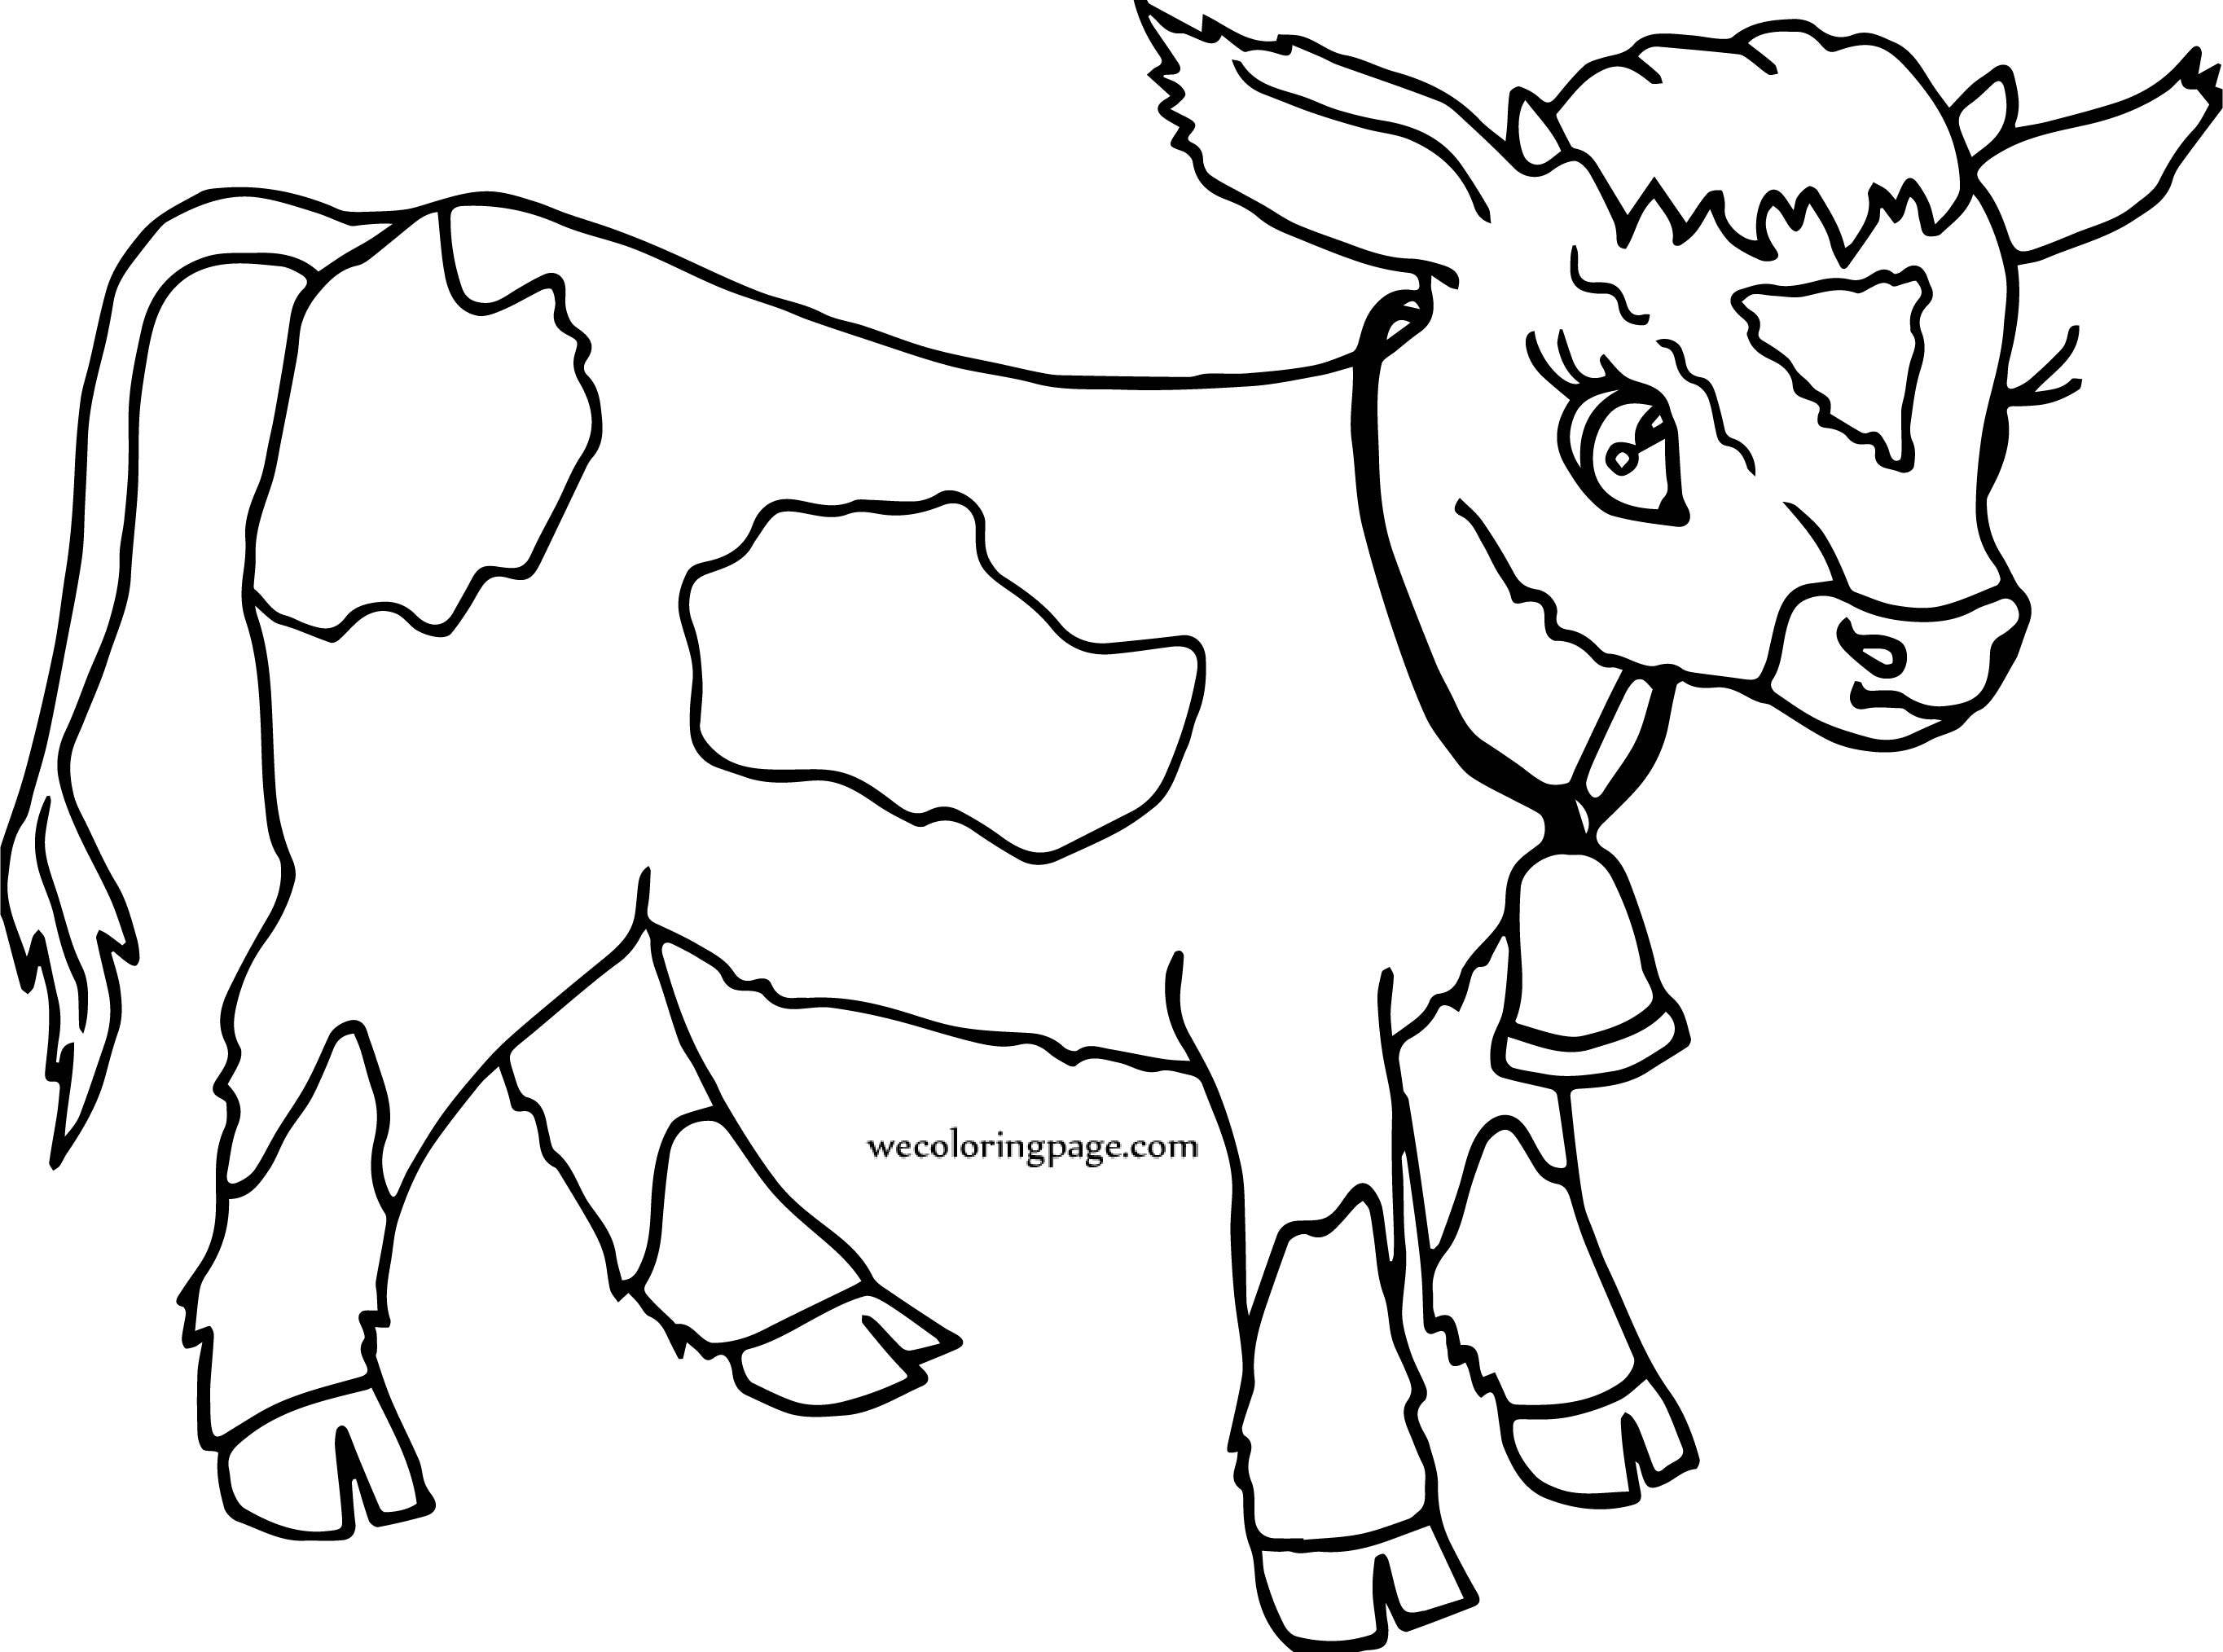 Cartoon Cow Calf Coat Coloring Page